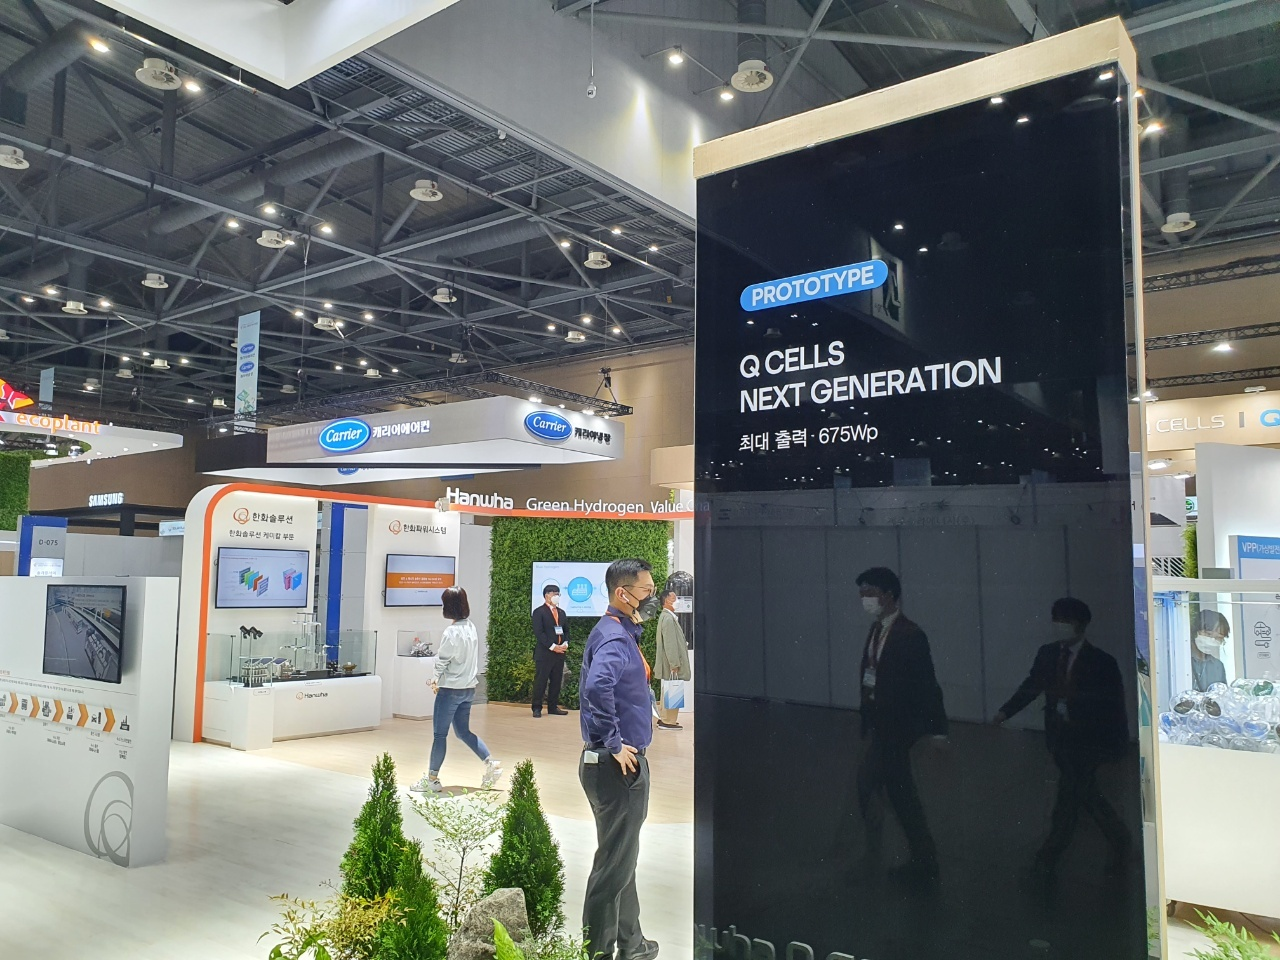 """Hanwha Q Cells booth at Net Zero Expo held at Kintex in Ilsan, Gyeonggi Province, on Wednesday. Hanwha Q Cells unveiled its much-anticipated next-generation """"tandem"""" solar cells at the event. (By Kim Byung-wook/The Korea Herald)"""